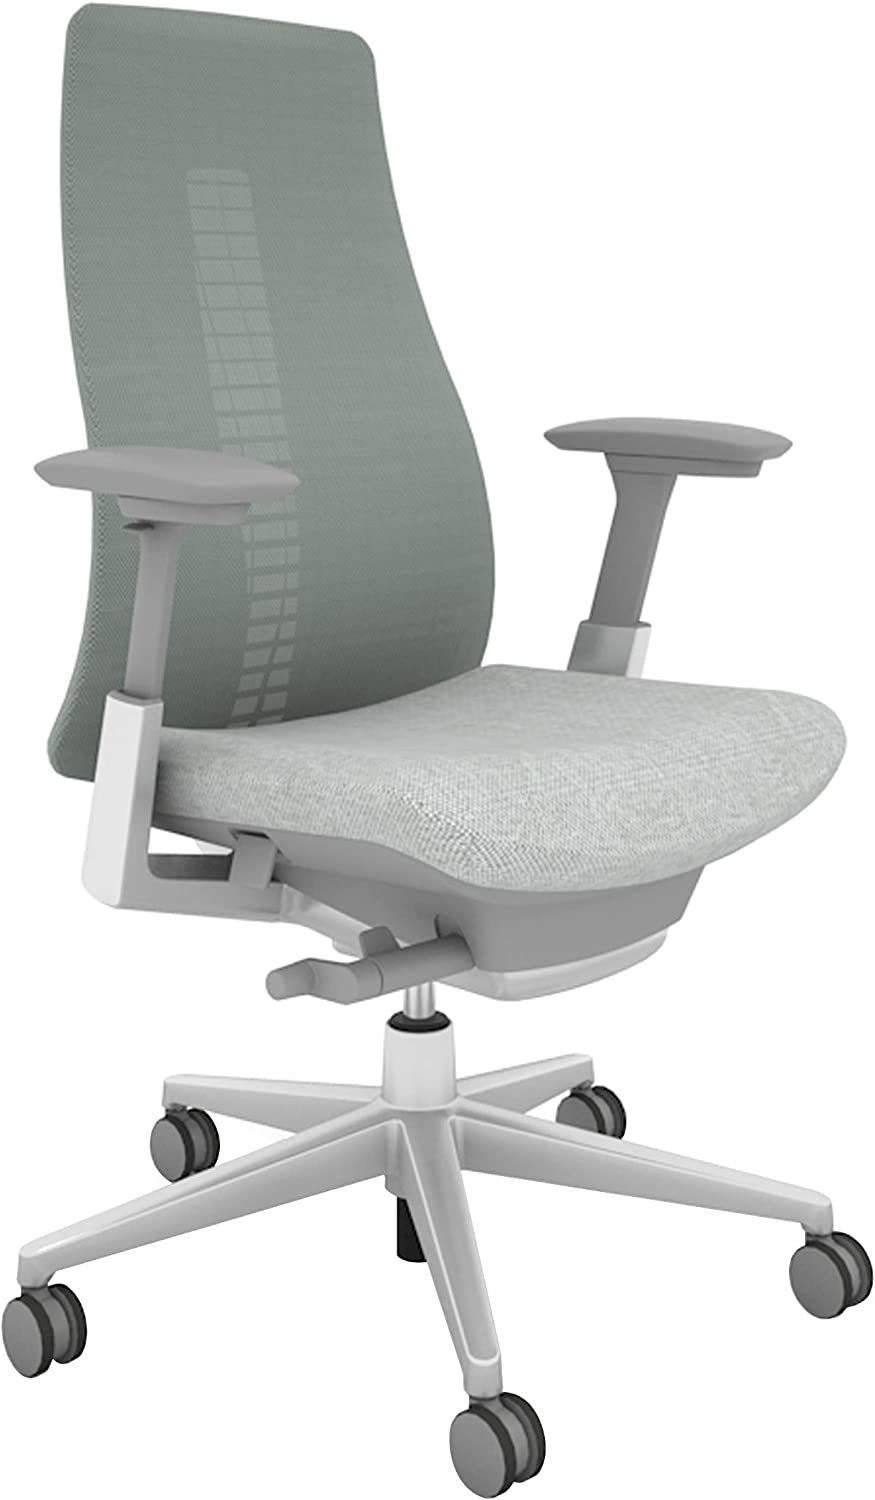 Haworth Fern High Performance Office Chair with Ergonomic Innovations and Flexible Mesh Back, Silver Leaf